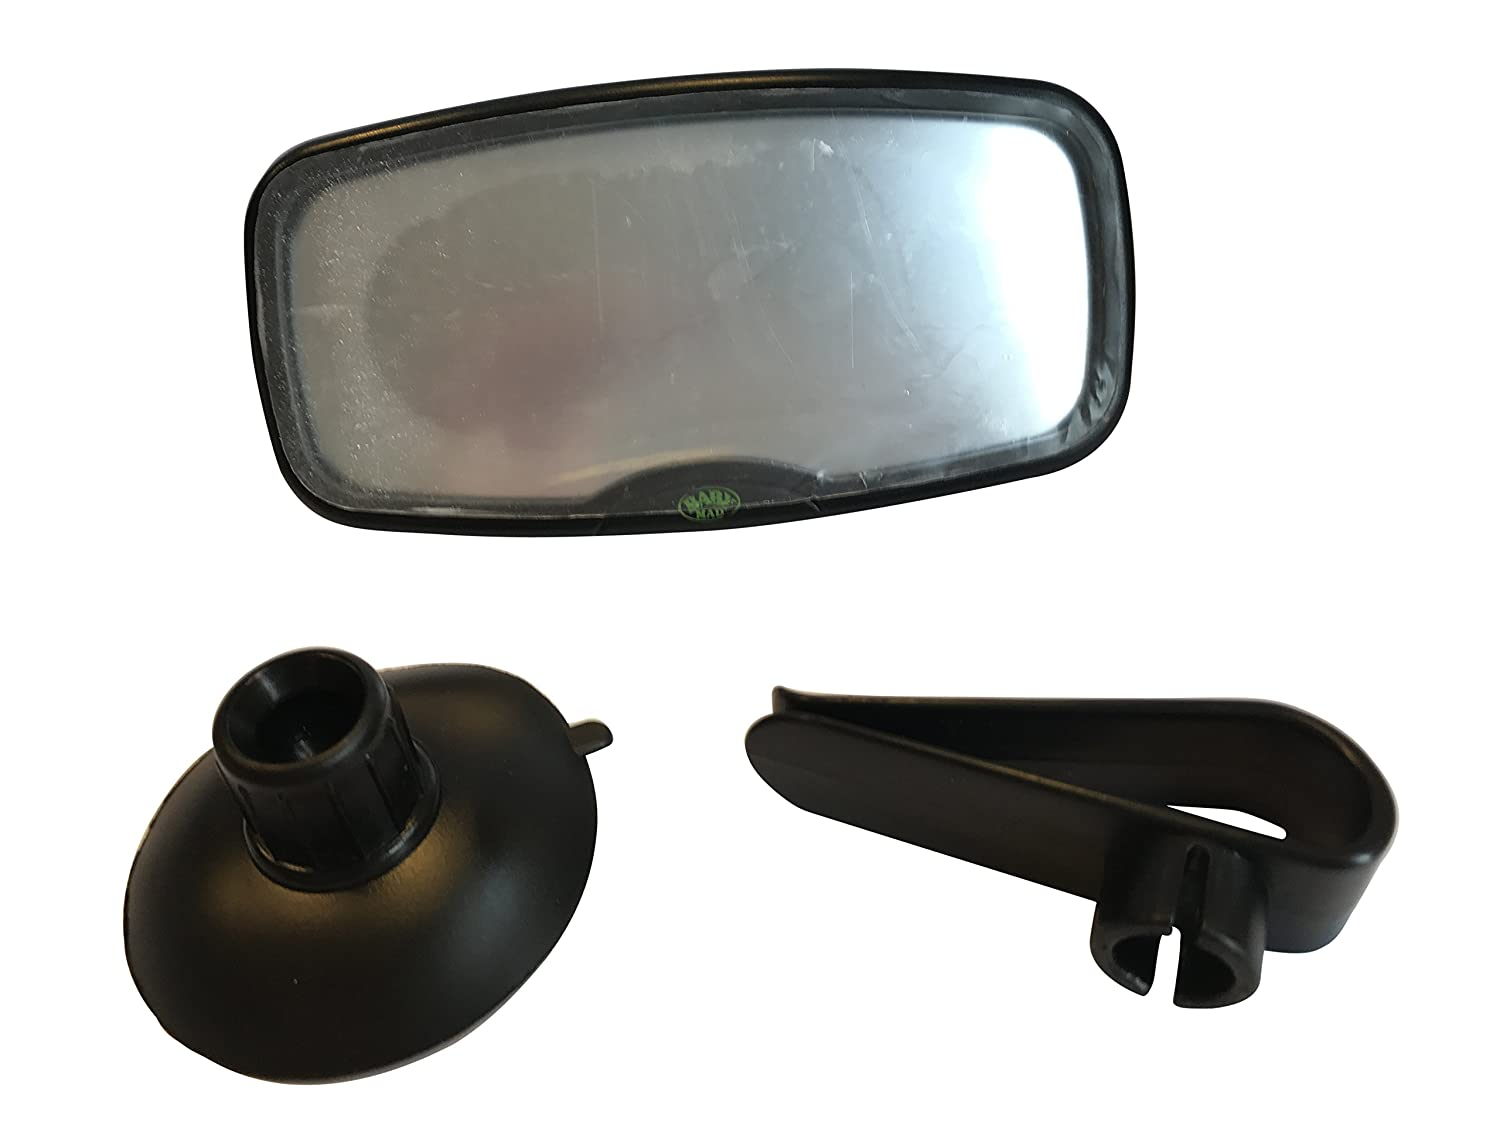 2 in 1 Baby Car Mirror Safety Child Rear View Mirror - Clip to Sun Visor Or use Suction Cup to Stick to Windscreen Car Rear View BabyMad® BM_2in1_Mir